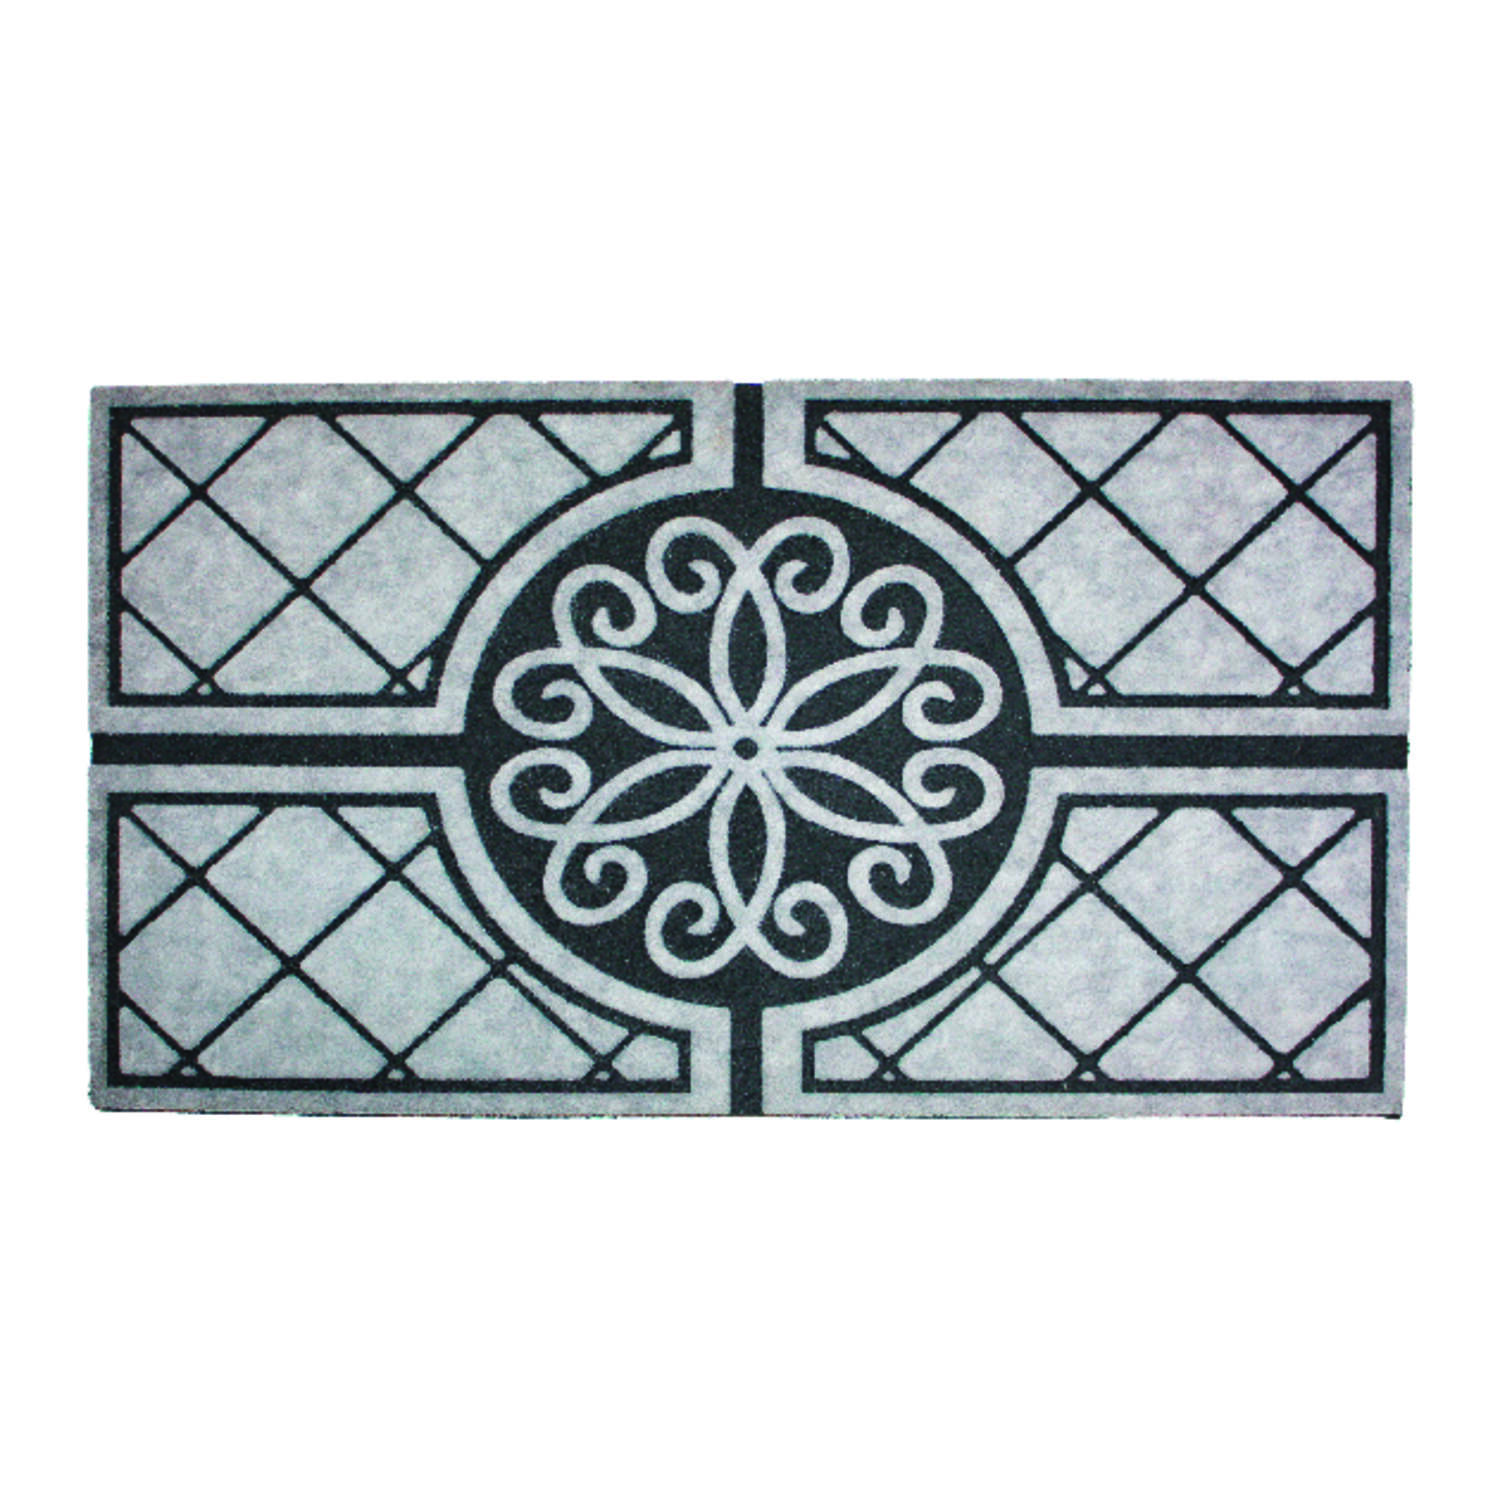 J & M Home Fashions 30 in. L x 18 in. W Gray Nonslip Door Mat